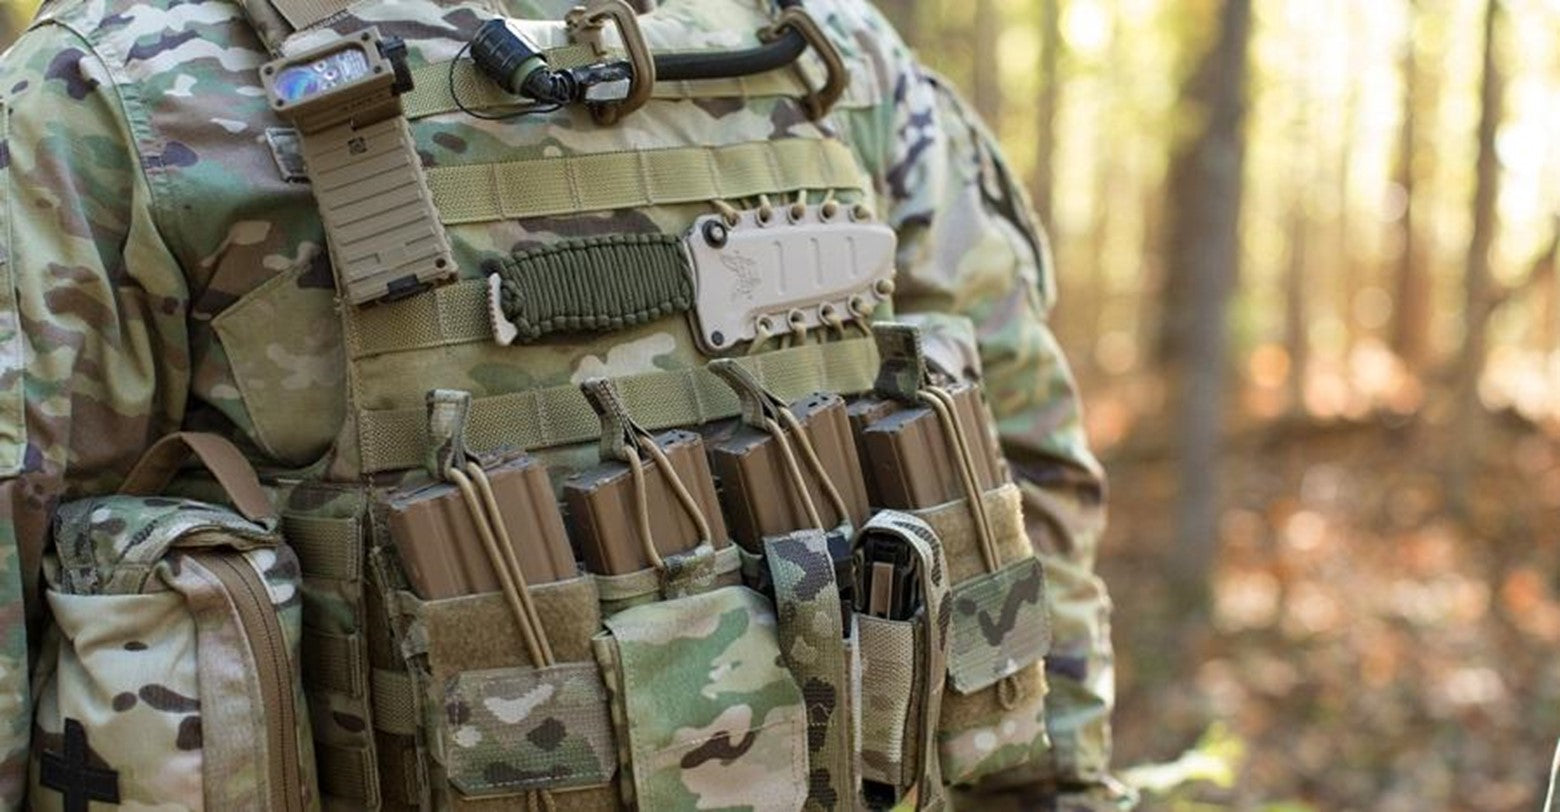 Image of a Tactical Plate Carrier Vest